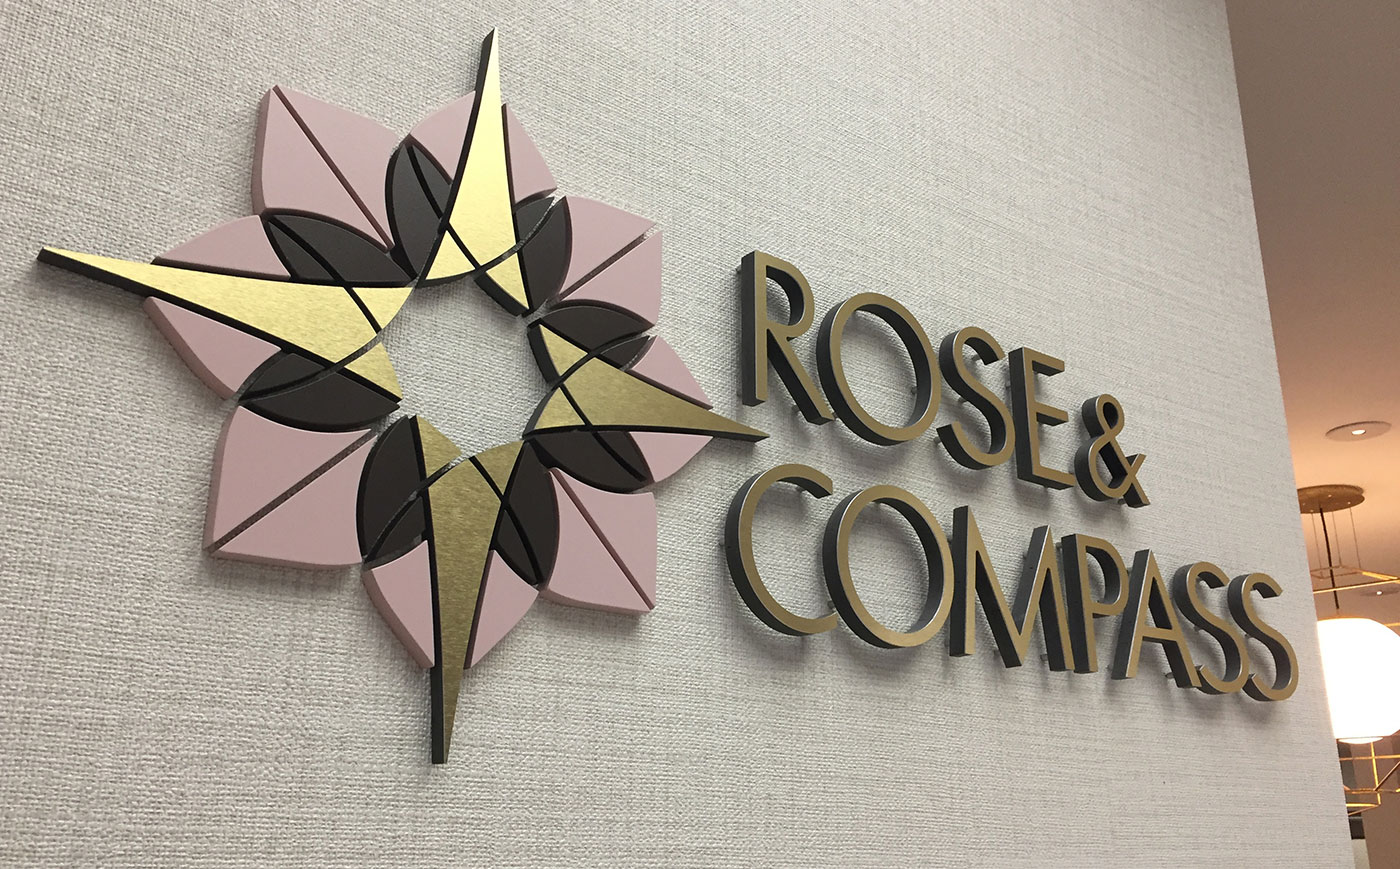 Rose & Compass restaurant sign design